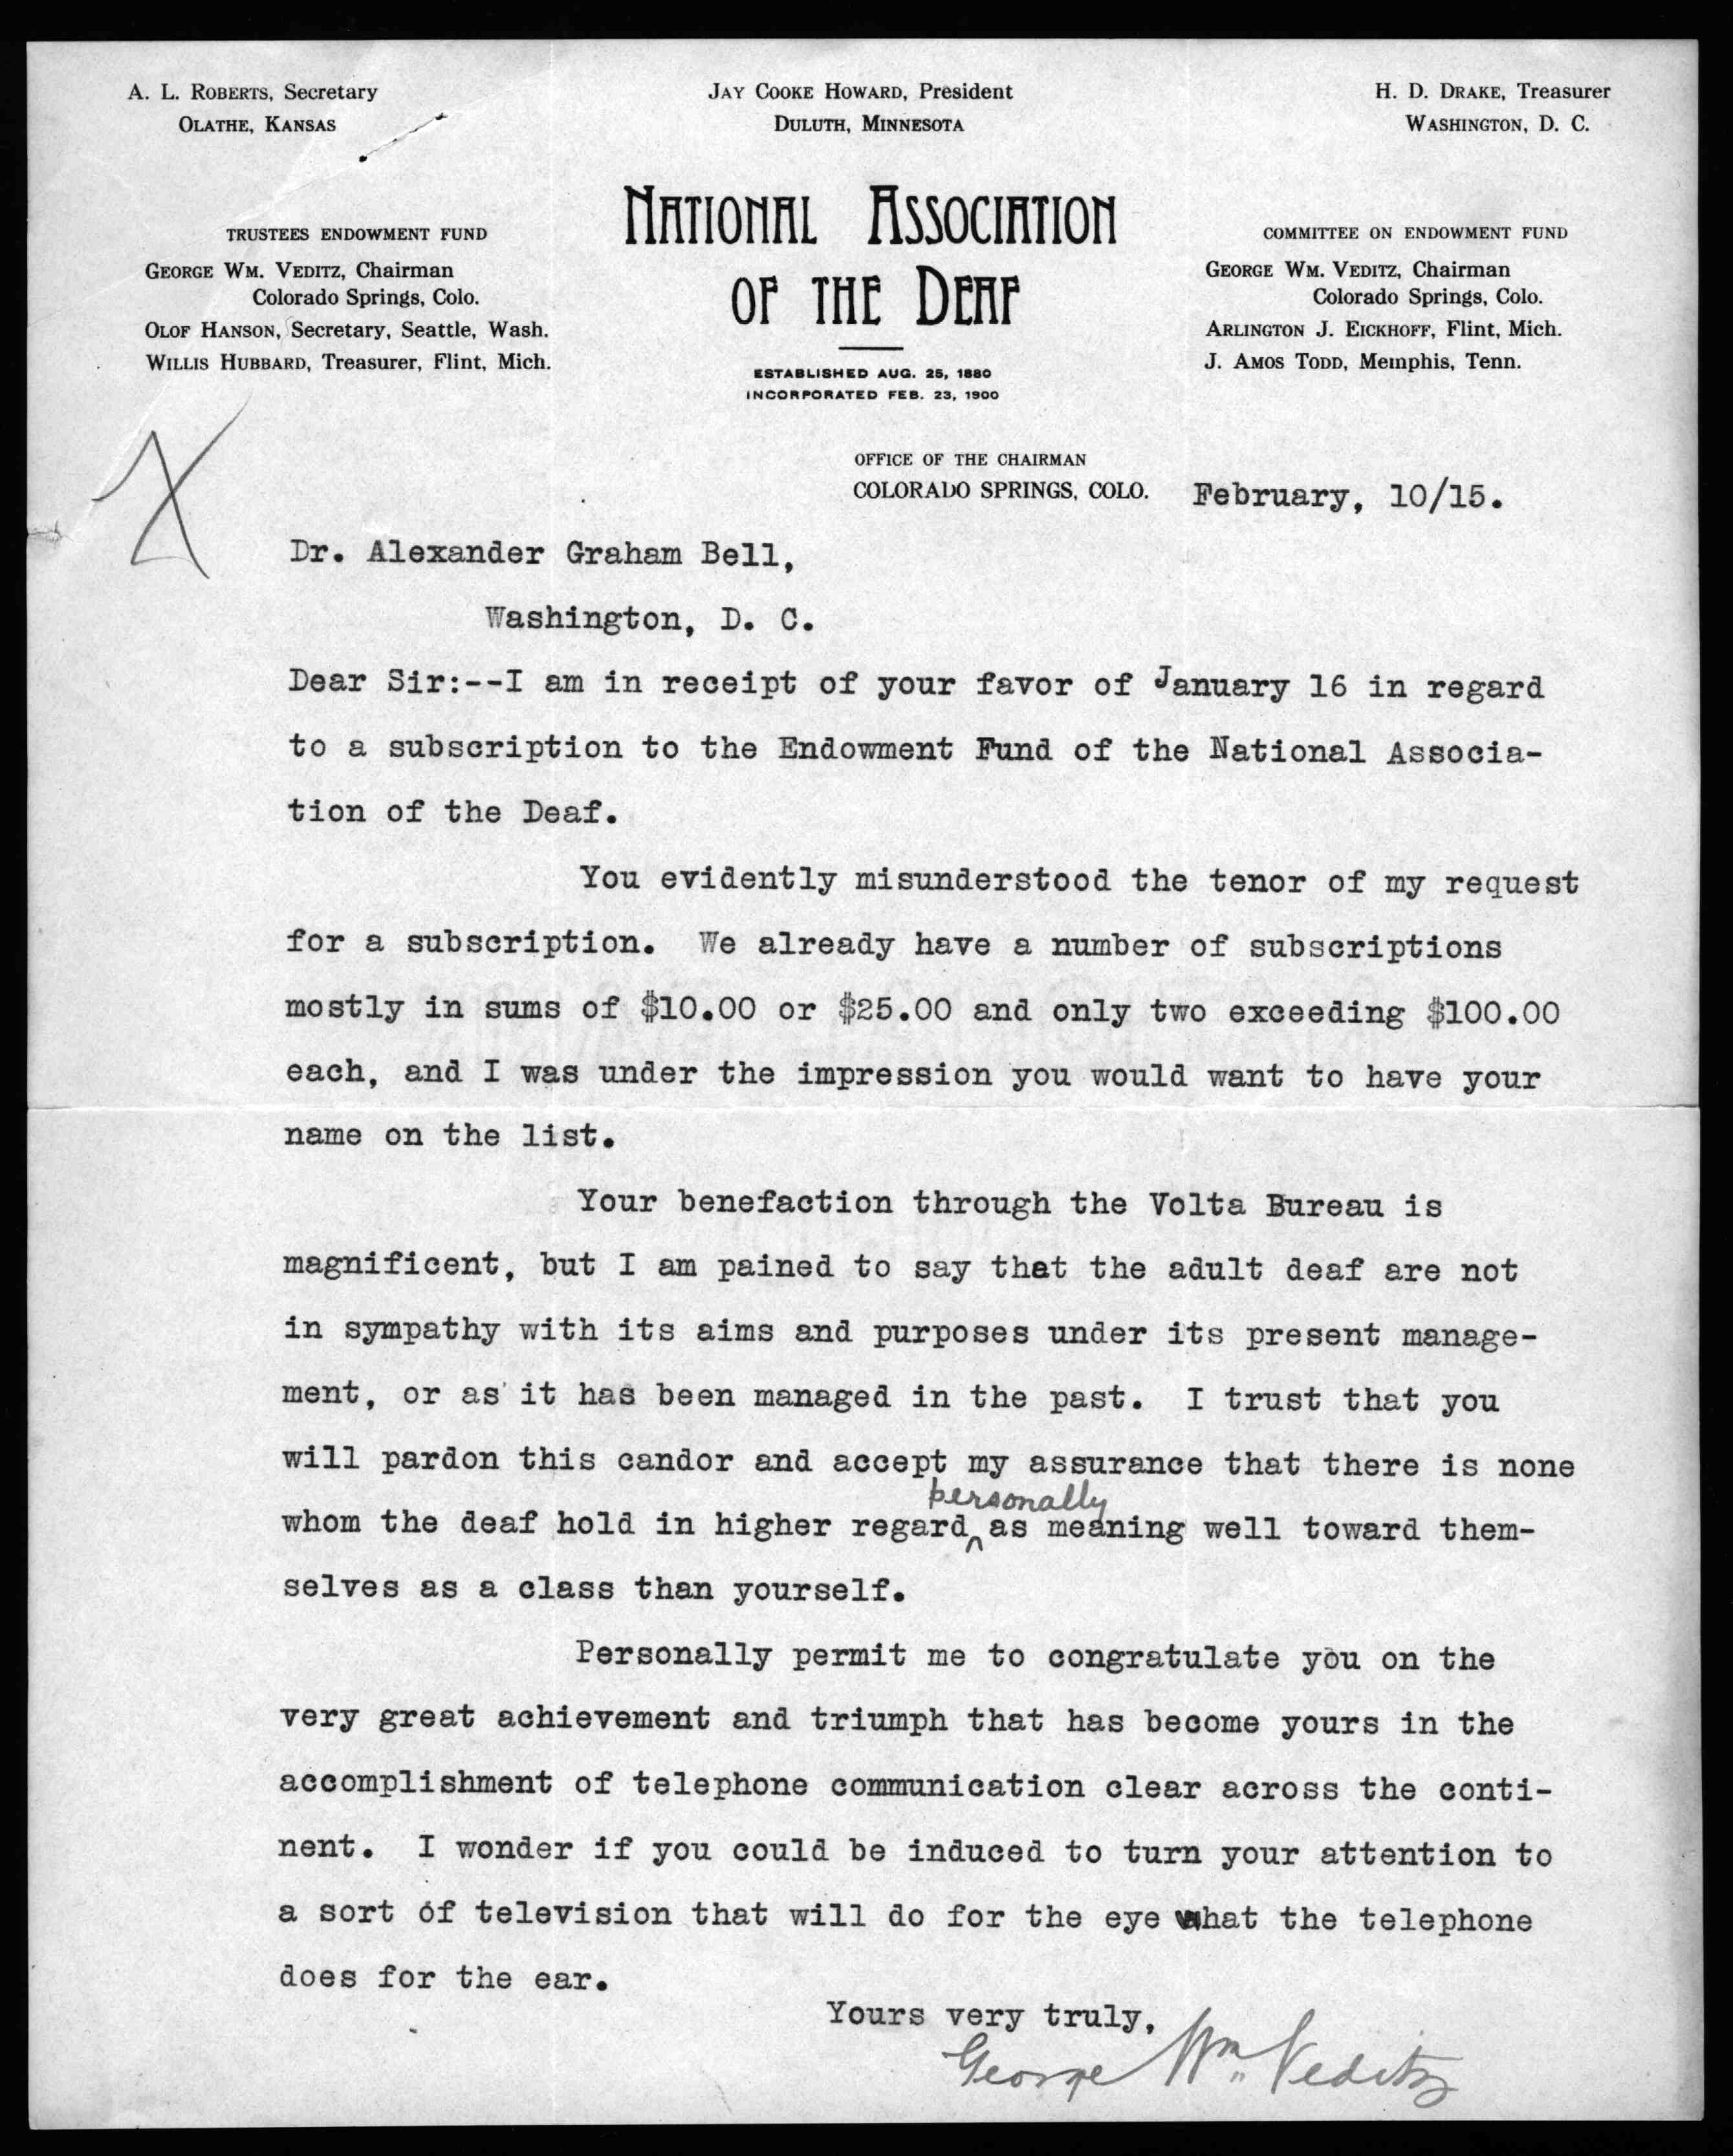 Letter from George W. Veditz to Alexander Graham Bell